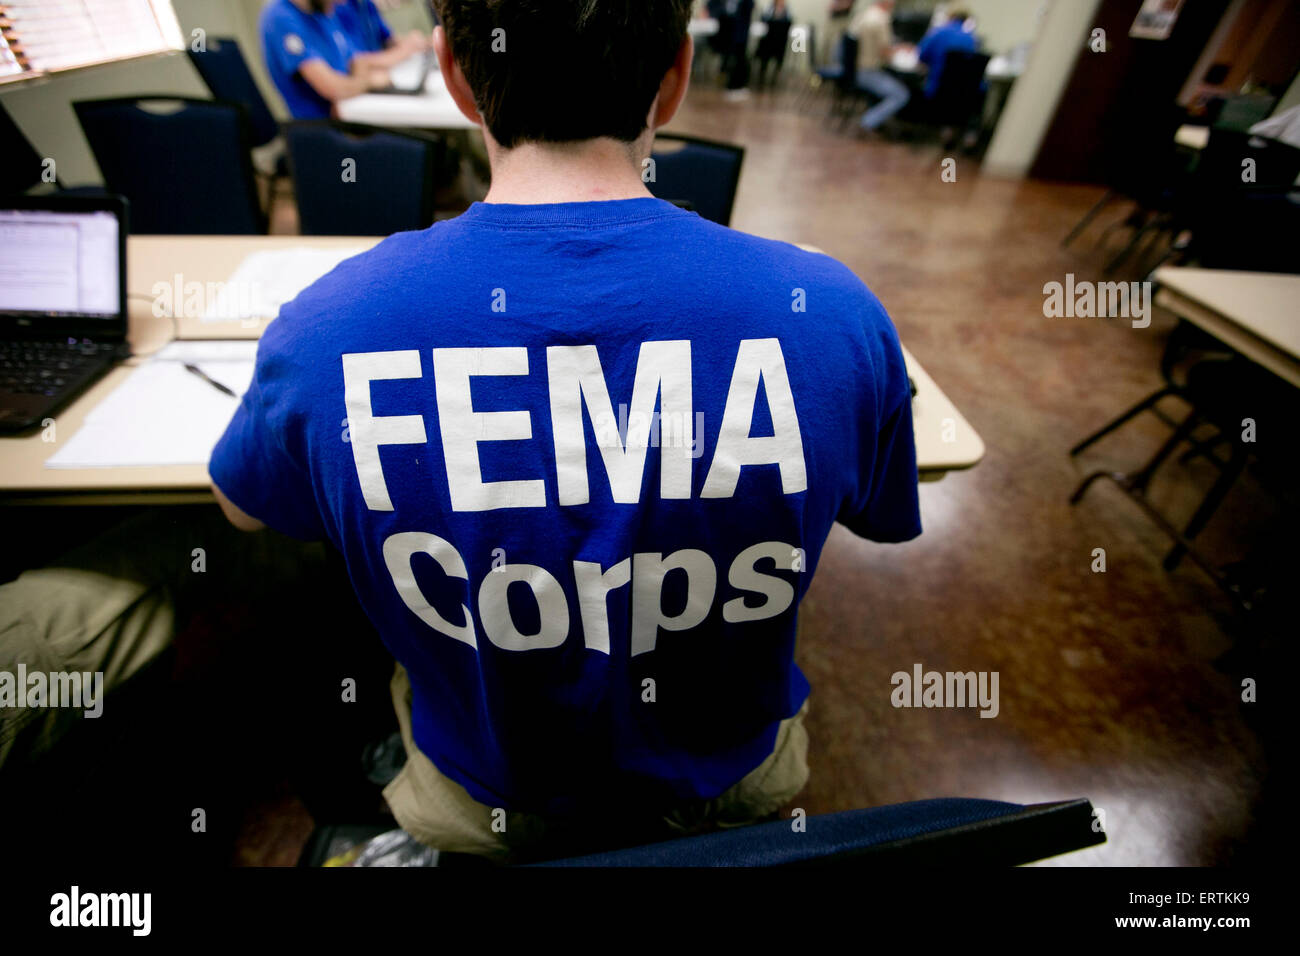 FEMA workers set up to help citizens displaced by disaster flooding - Stock Image